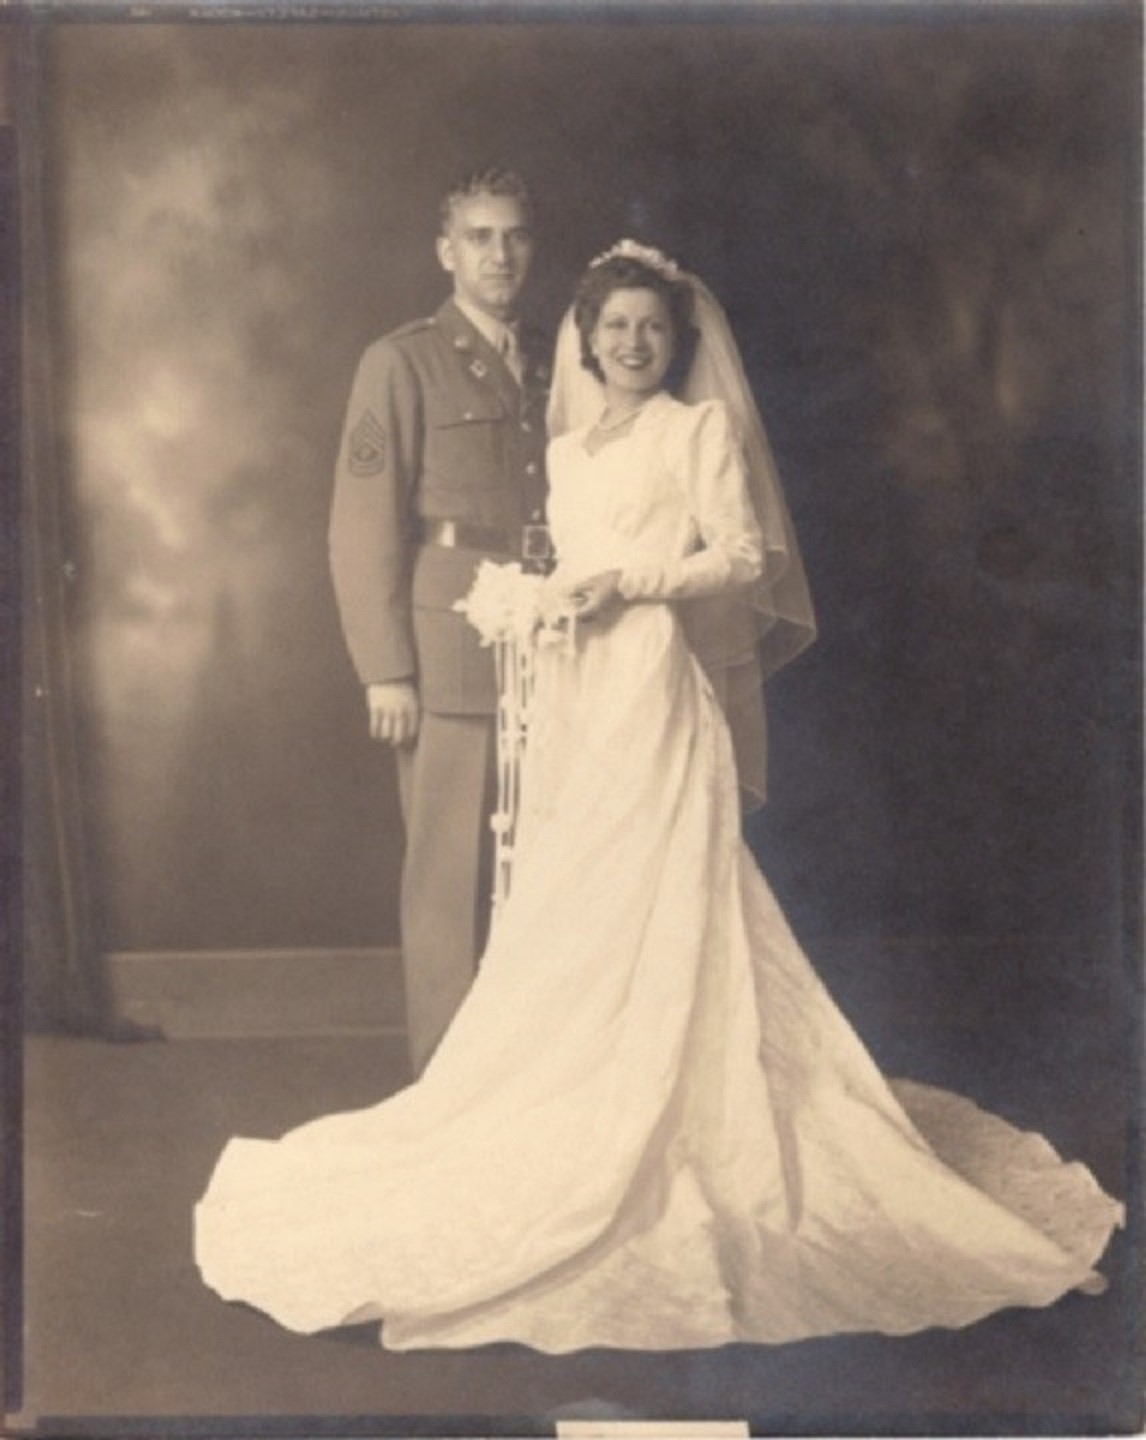 2_Sgt-1940-43-ASN-20237353-Lt.-Frank-Arnone-Wedding_pic_large-1910-1961